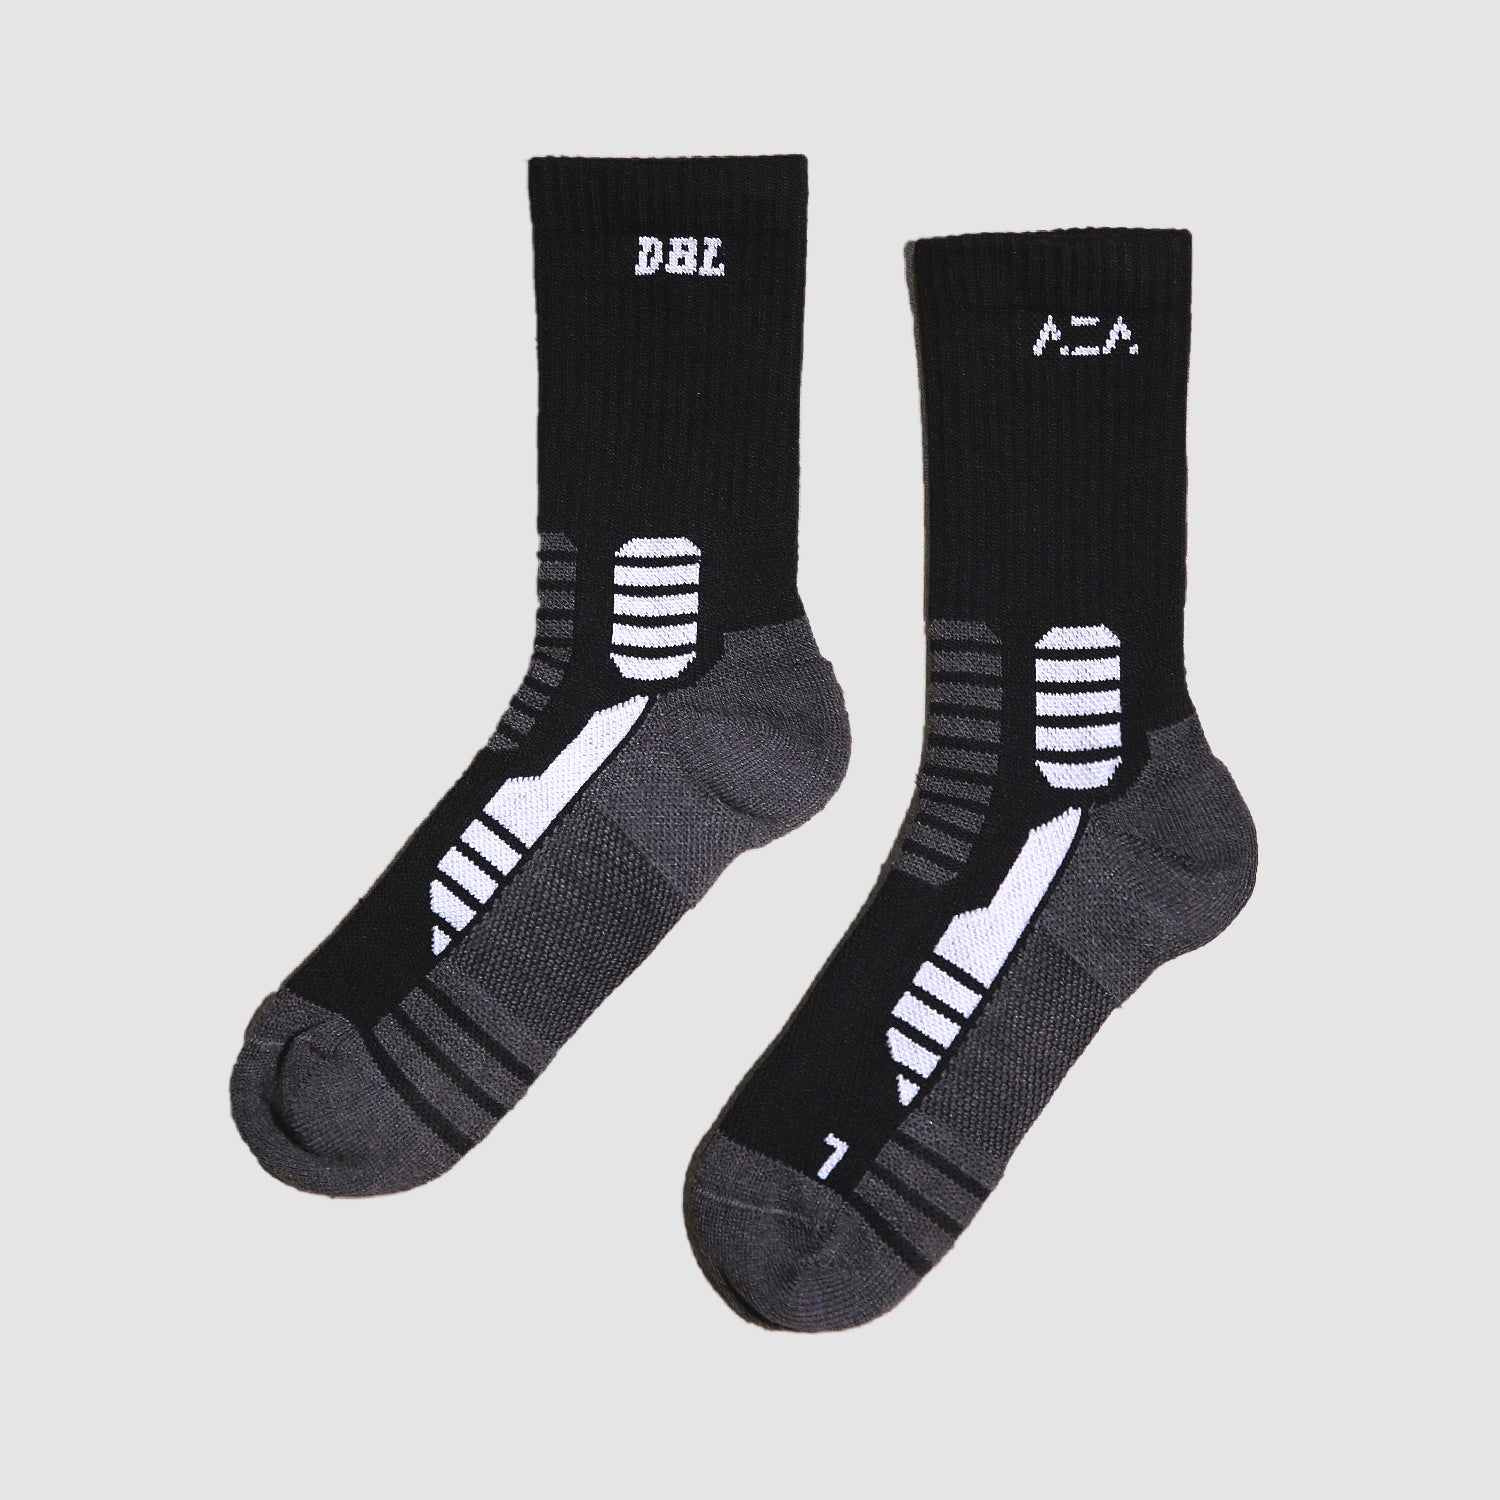 AZA Concept Elite Socks - Black